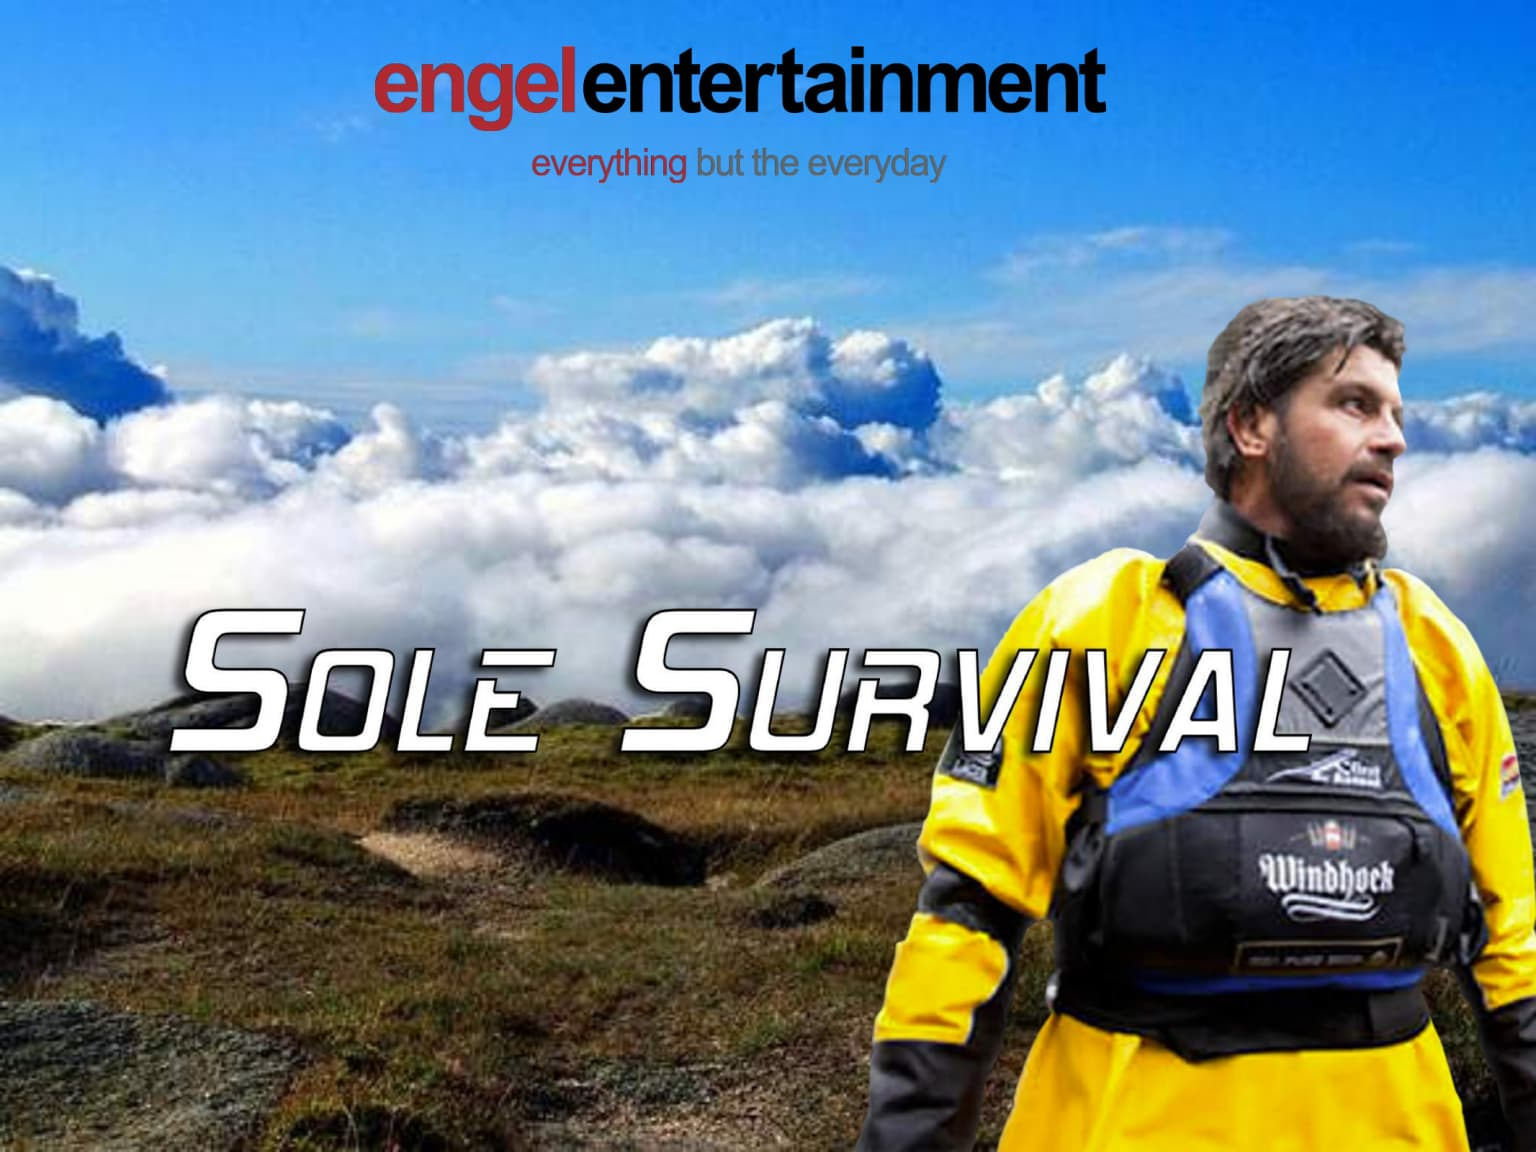 Sole Survivor Sizzle tape and treatment